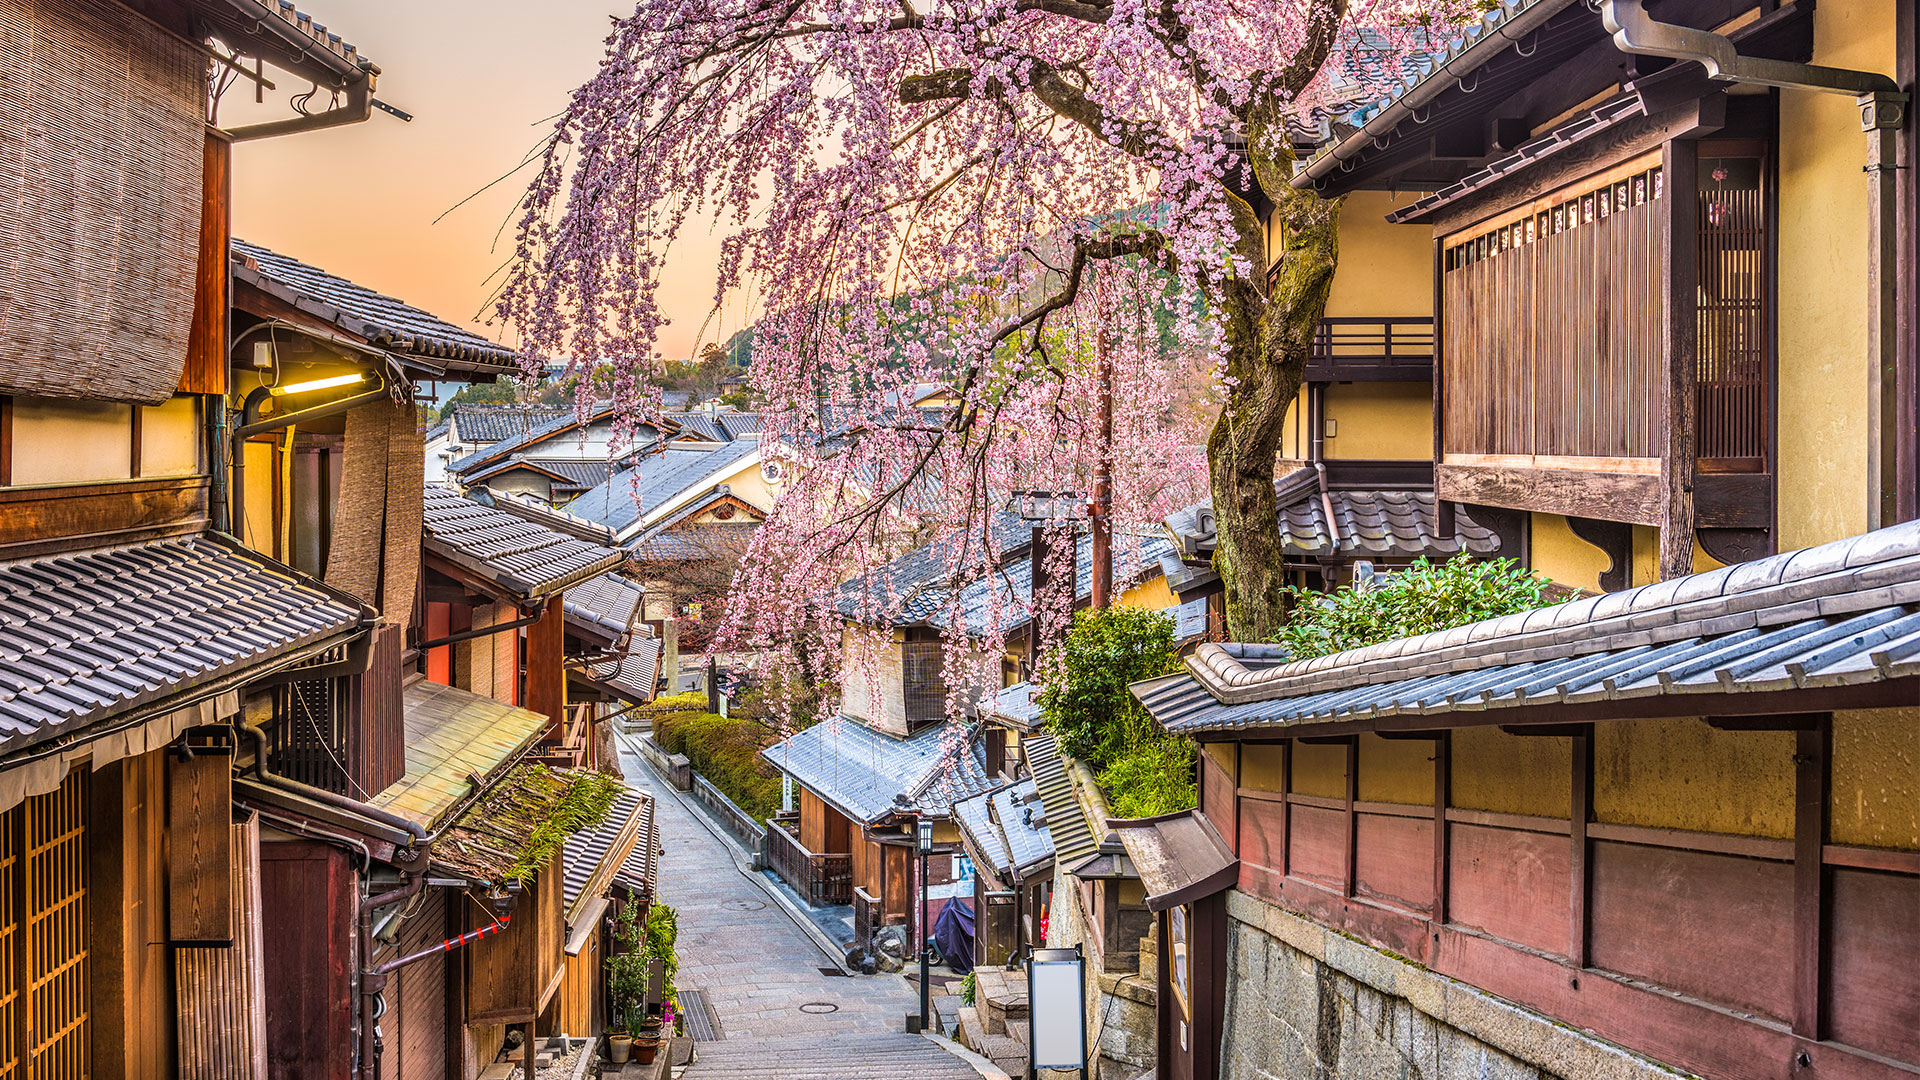 Temples, Geishas, and Bamboo Forests: The 4-Day Weekend in Kyoto